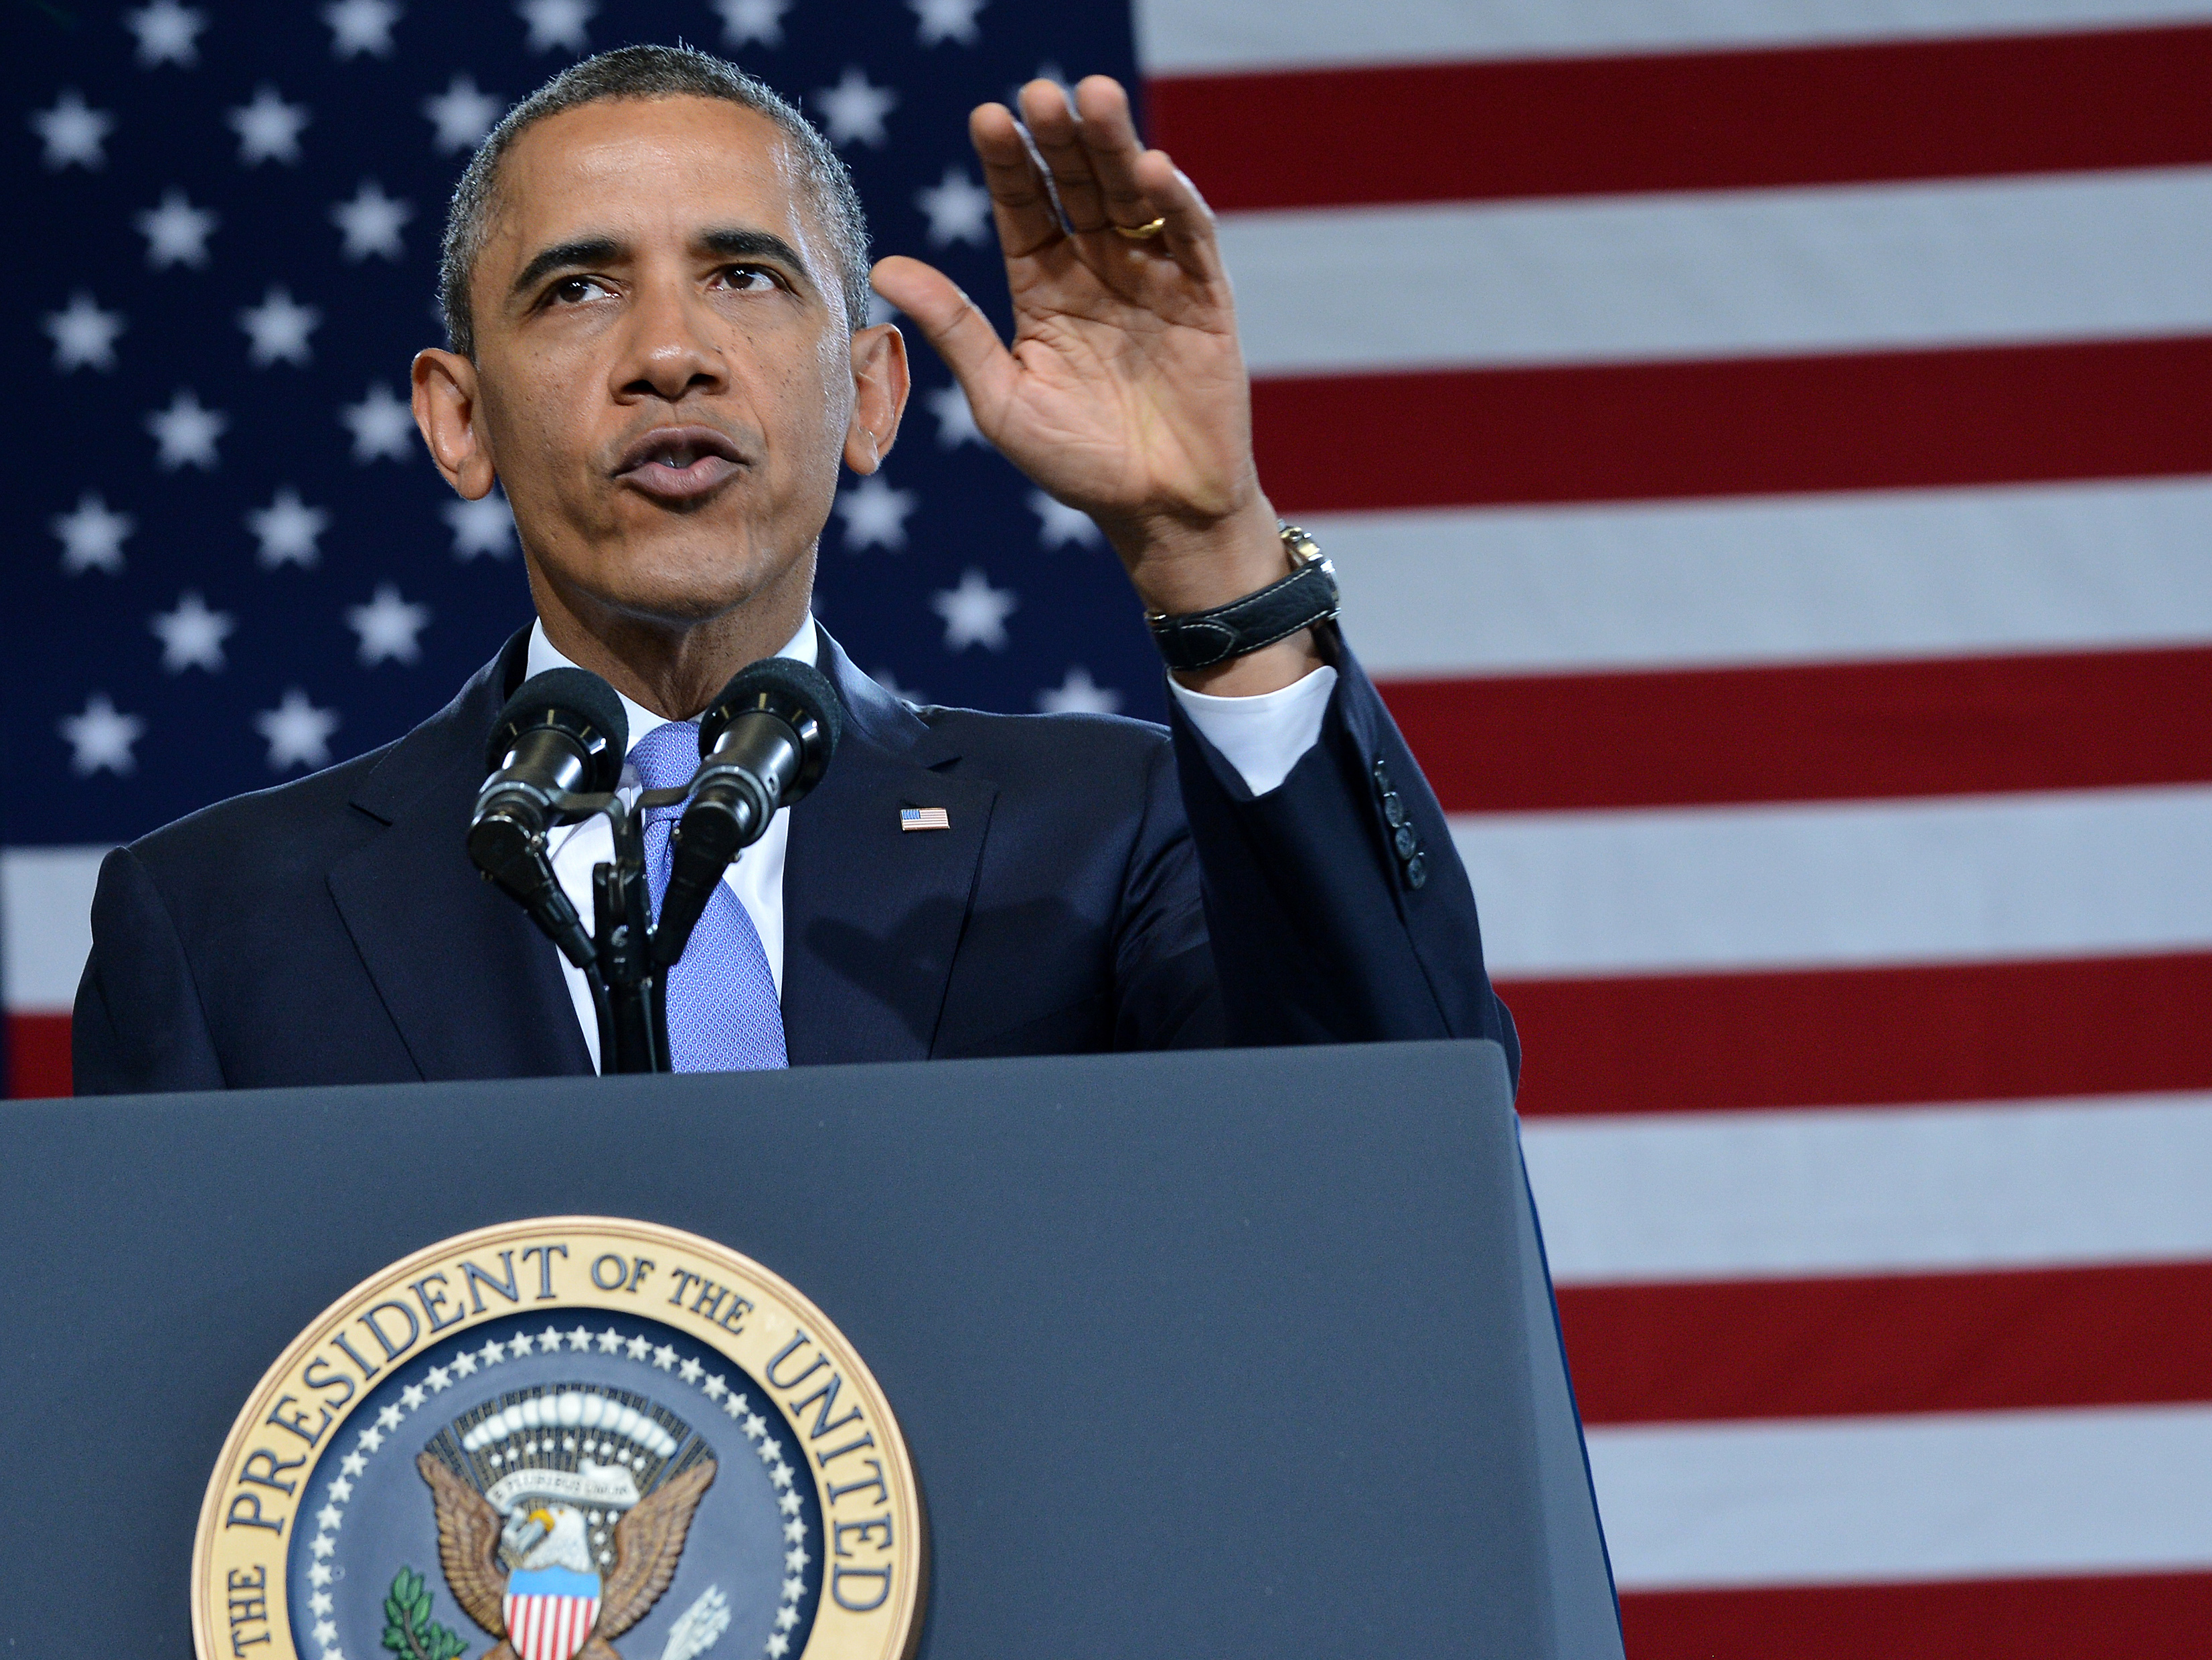 Reports: Obama To Propose Cuts In Social Programs